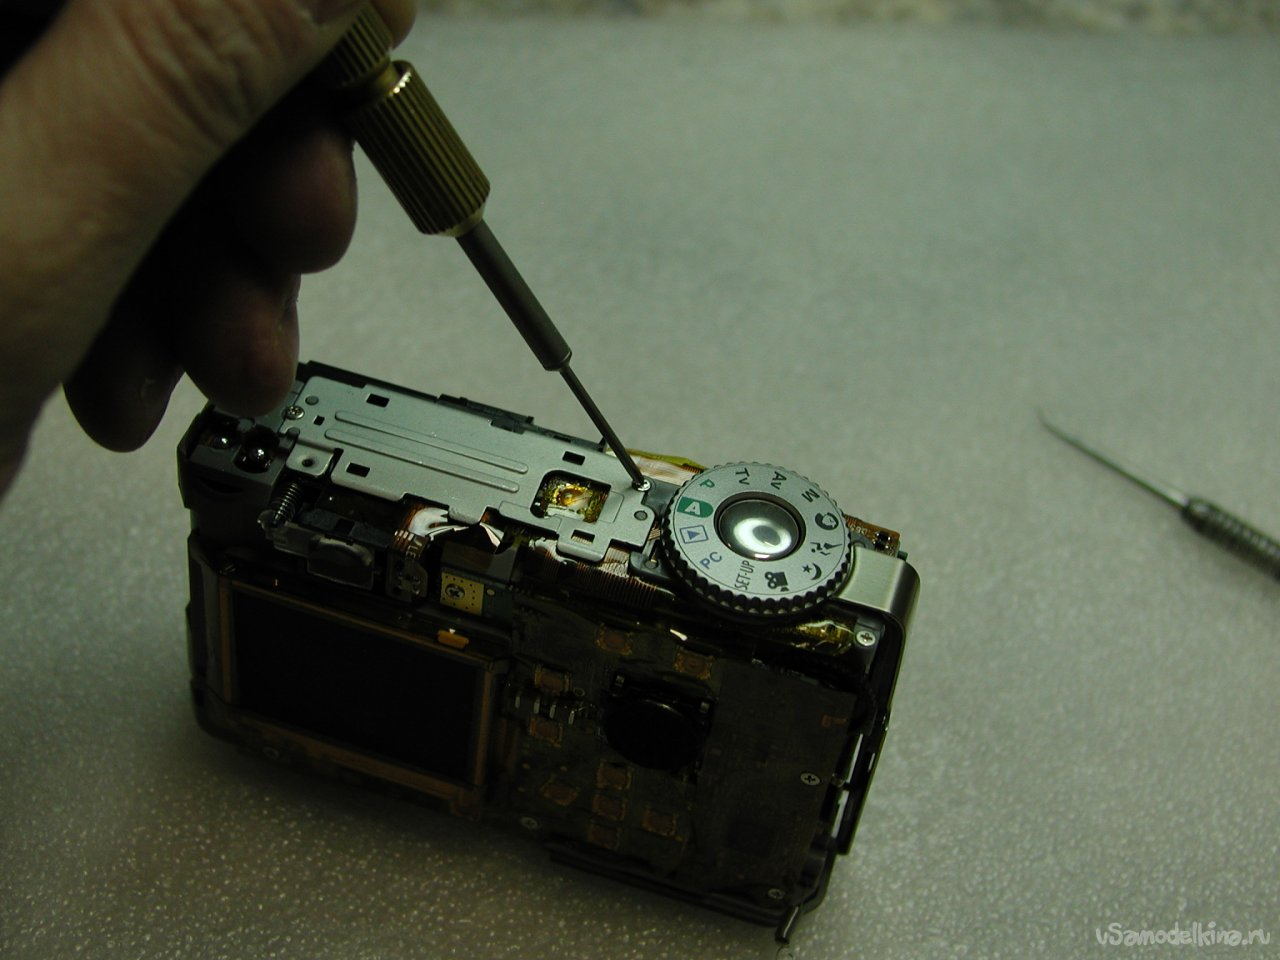 Cleaning from corrosion and replacing the camera display Genius P-533